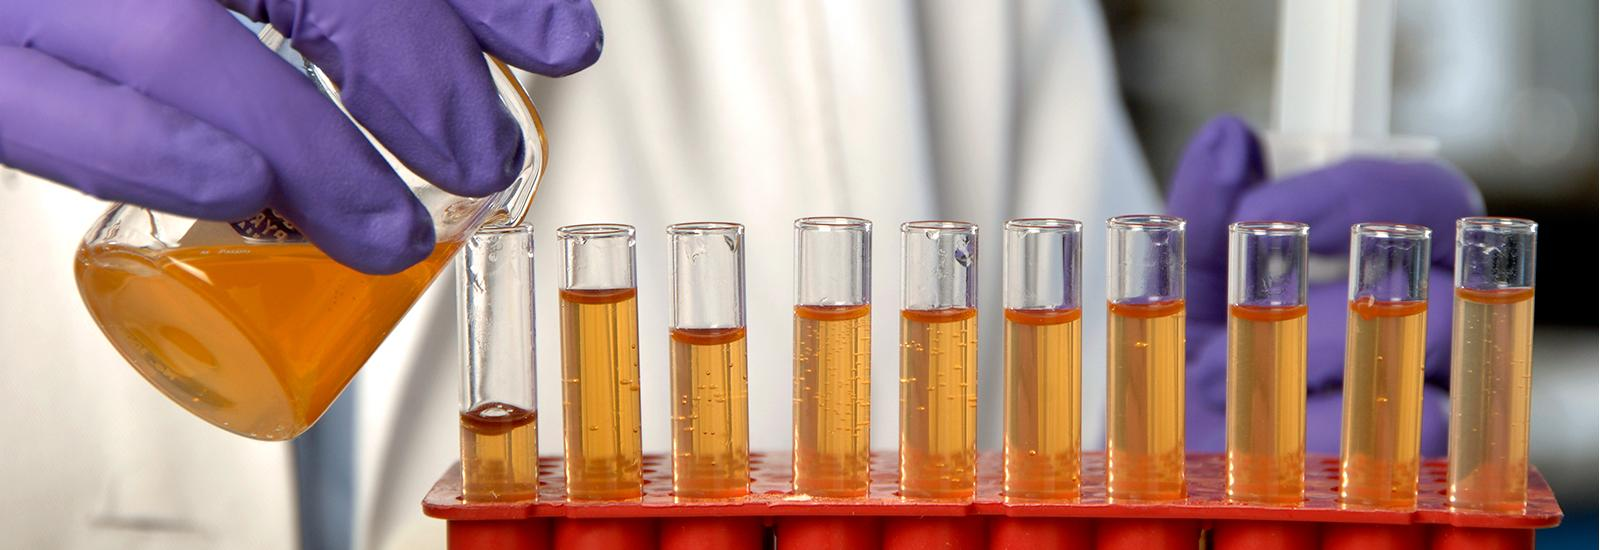 Liquid being poured into test tubes